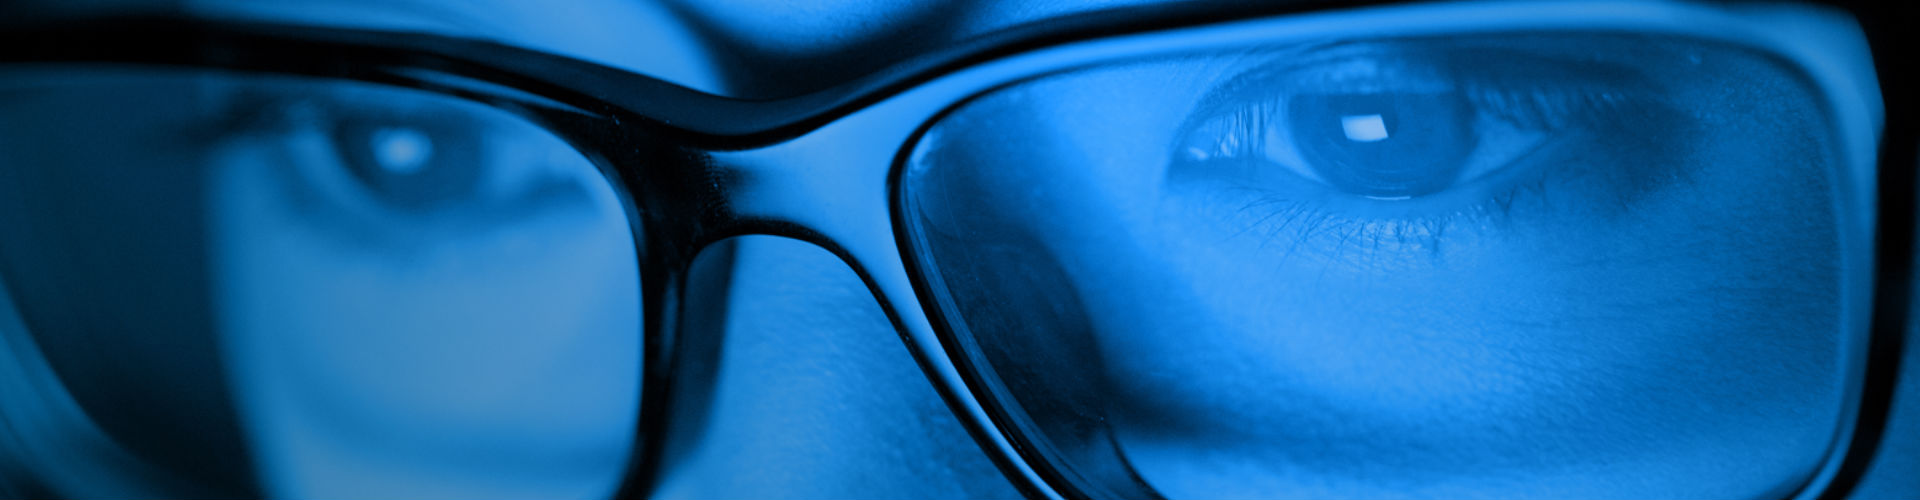 Is blue light affecting our quality of life?